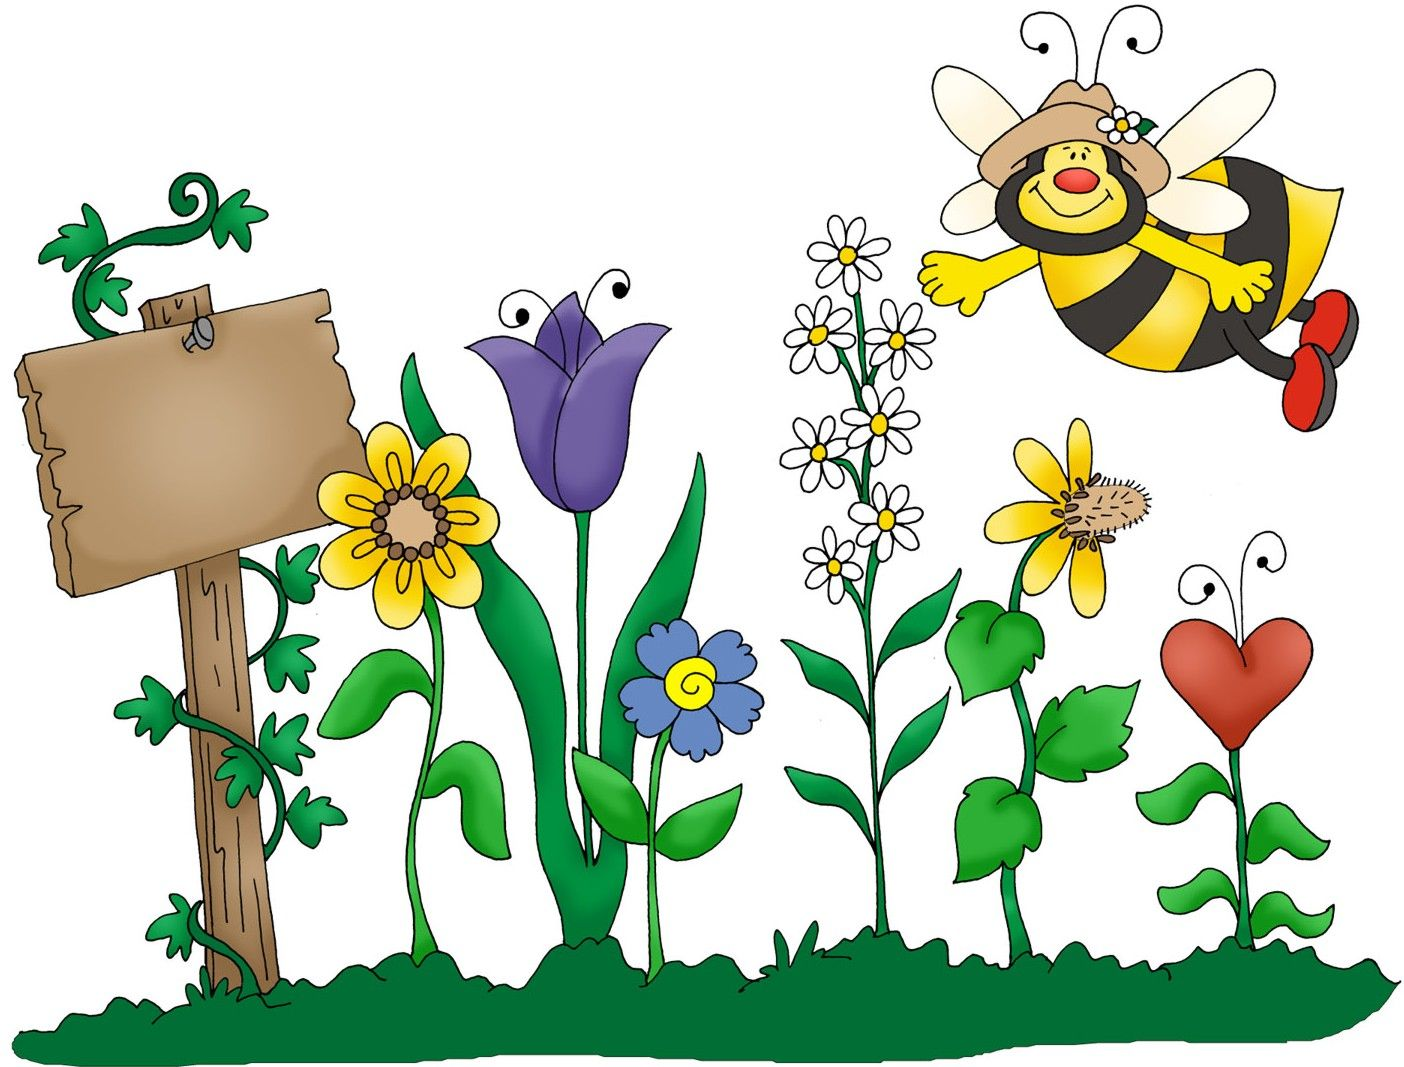 Gardening Clipart Free Clipart Images Clipartix Garden Clipart Free Clip Art Bee Garden